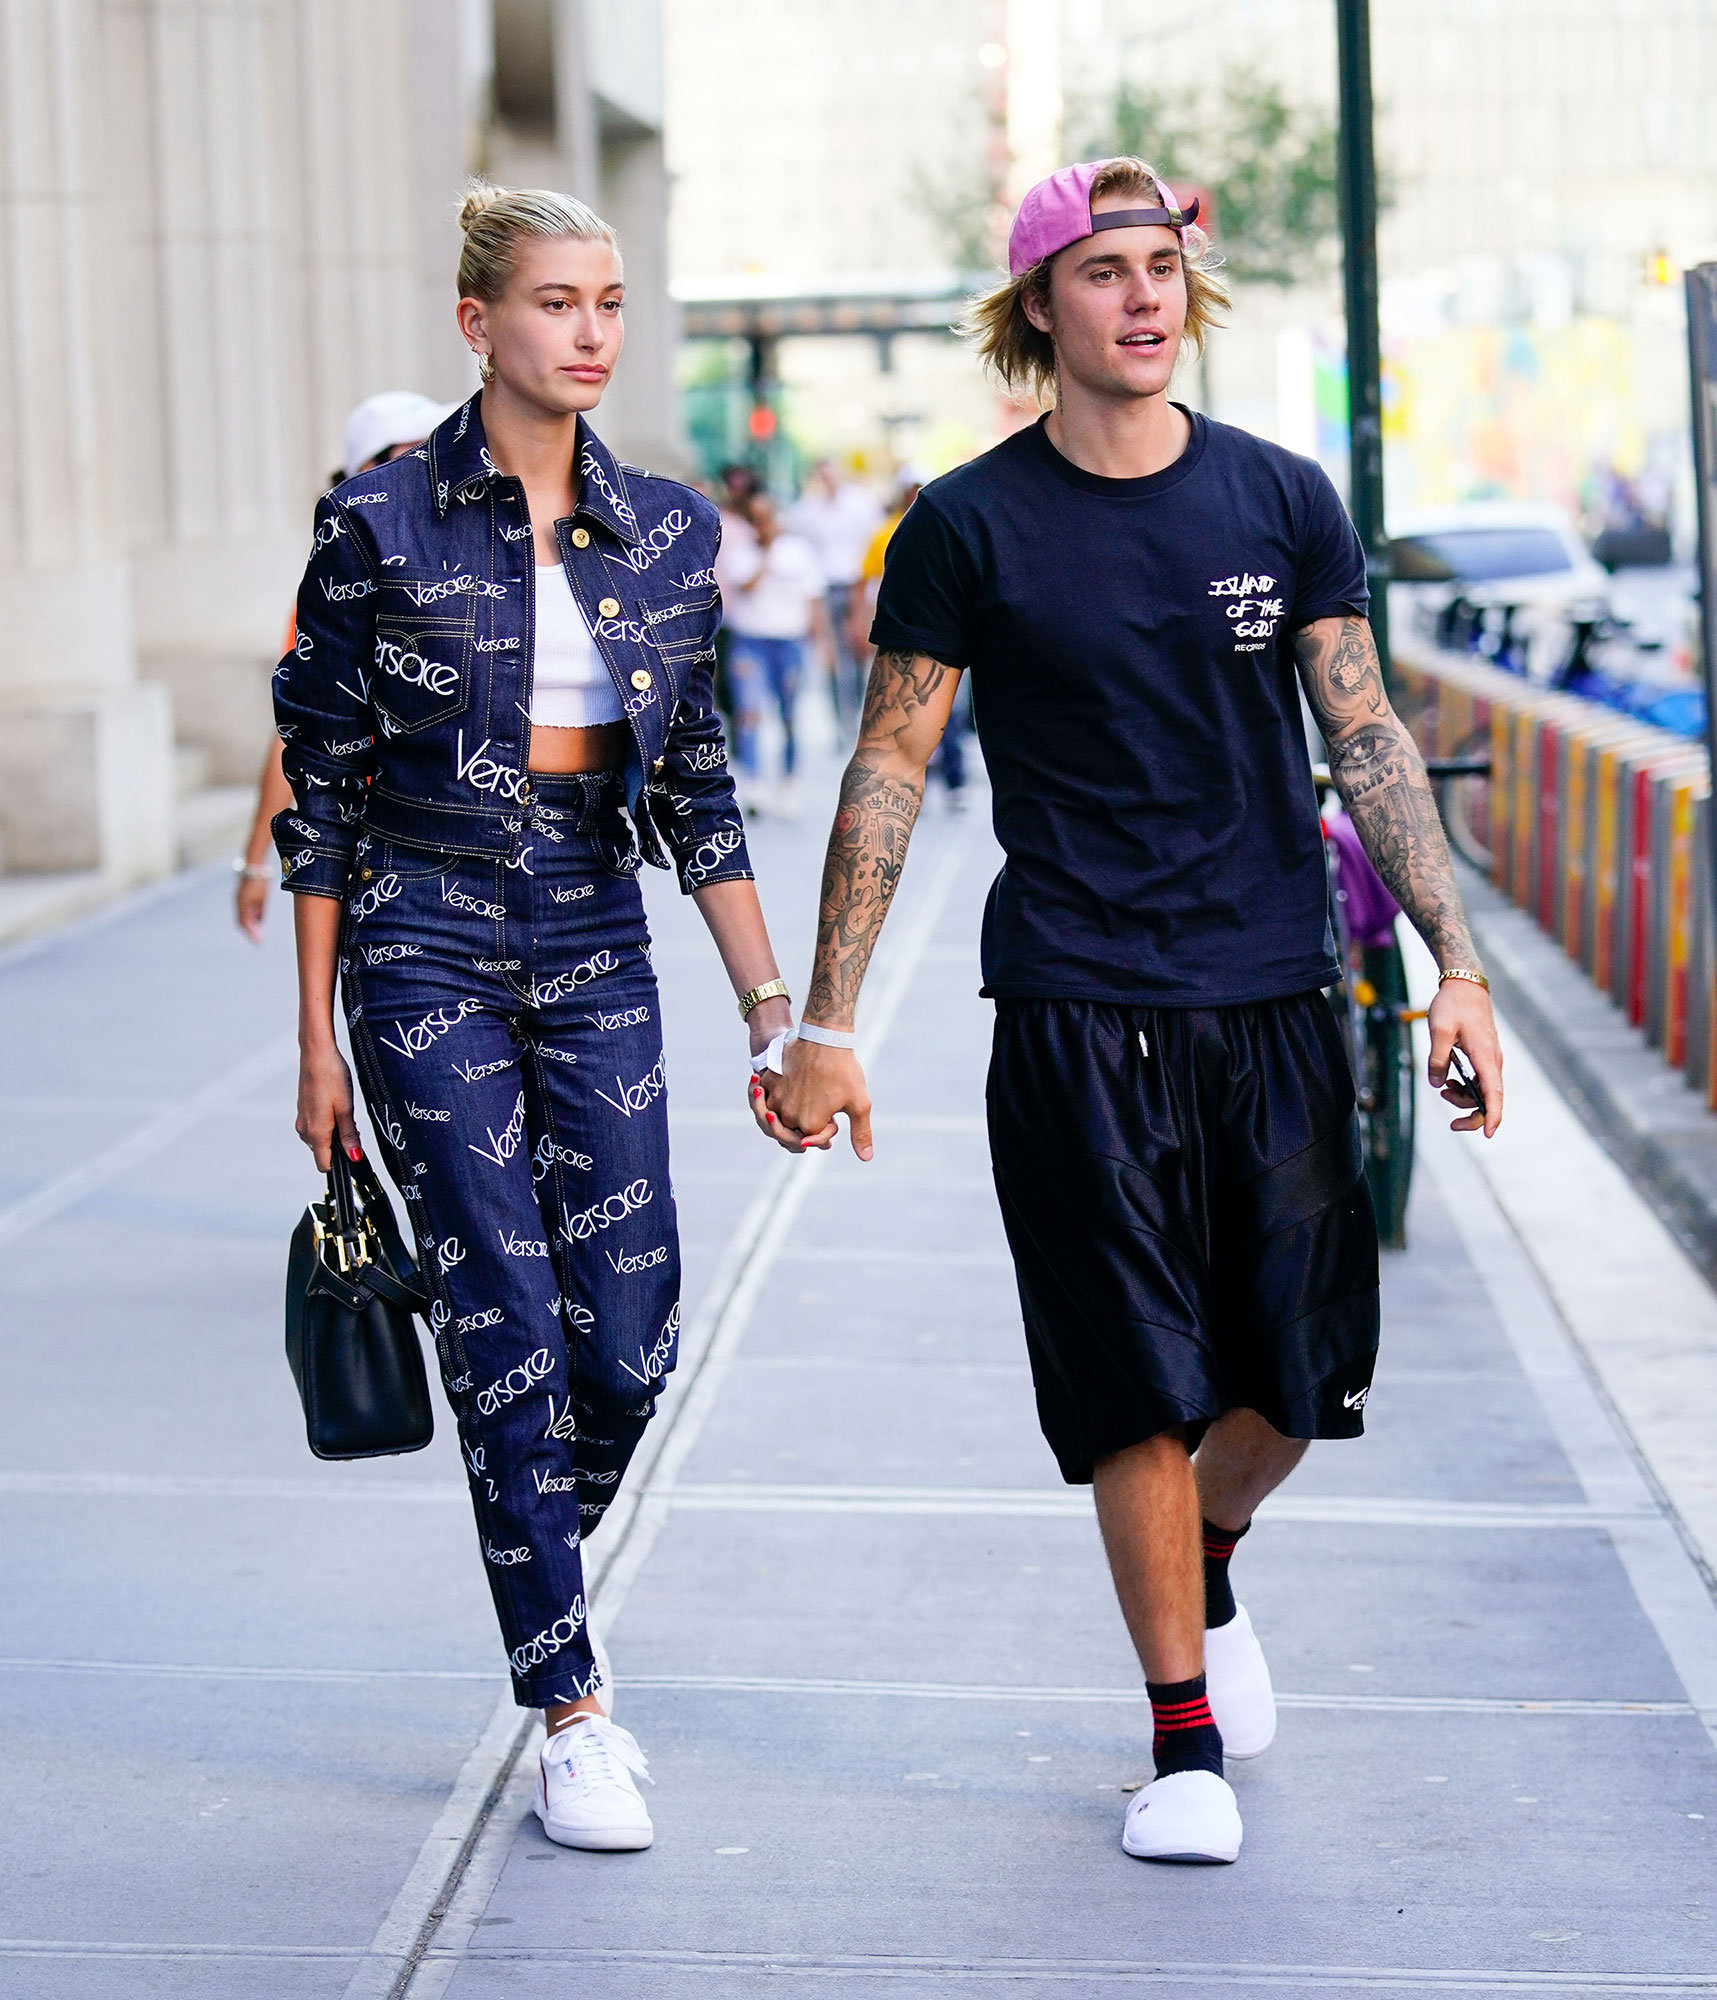 Justin Bieber and Hailey Baldwin hold hands when exiting Nobu restaurant in New York